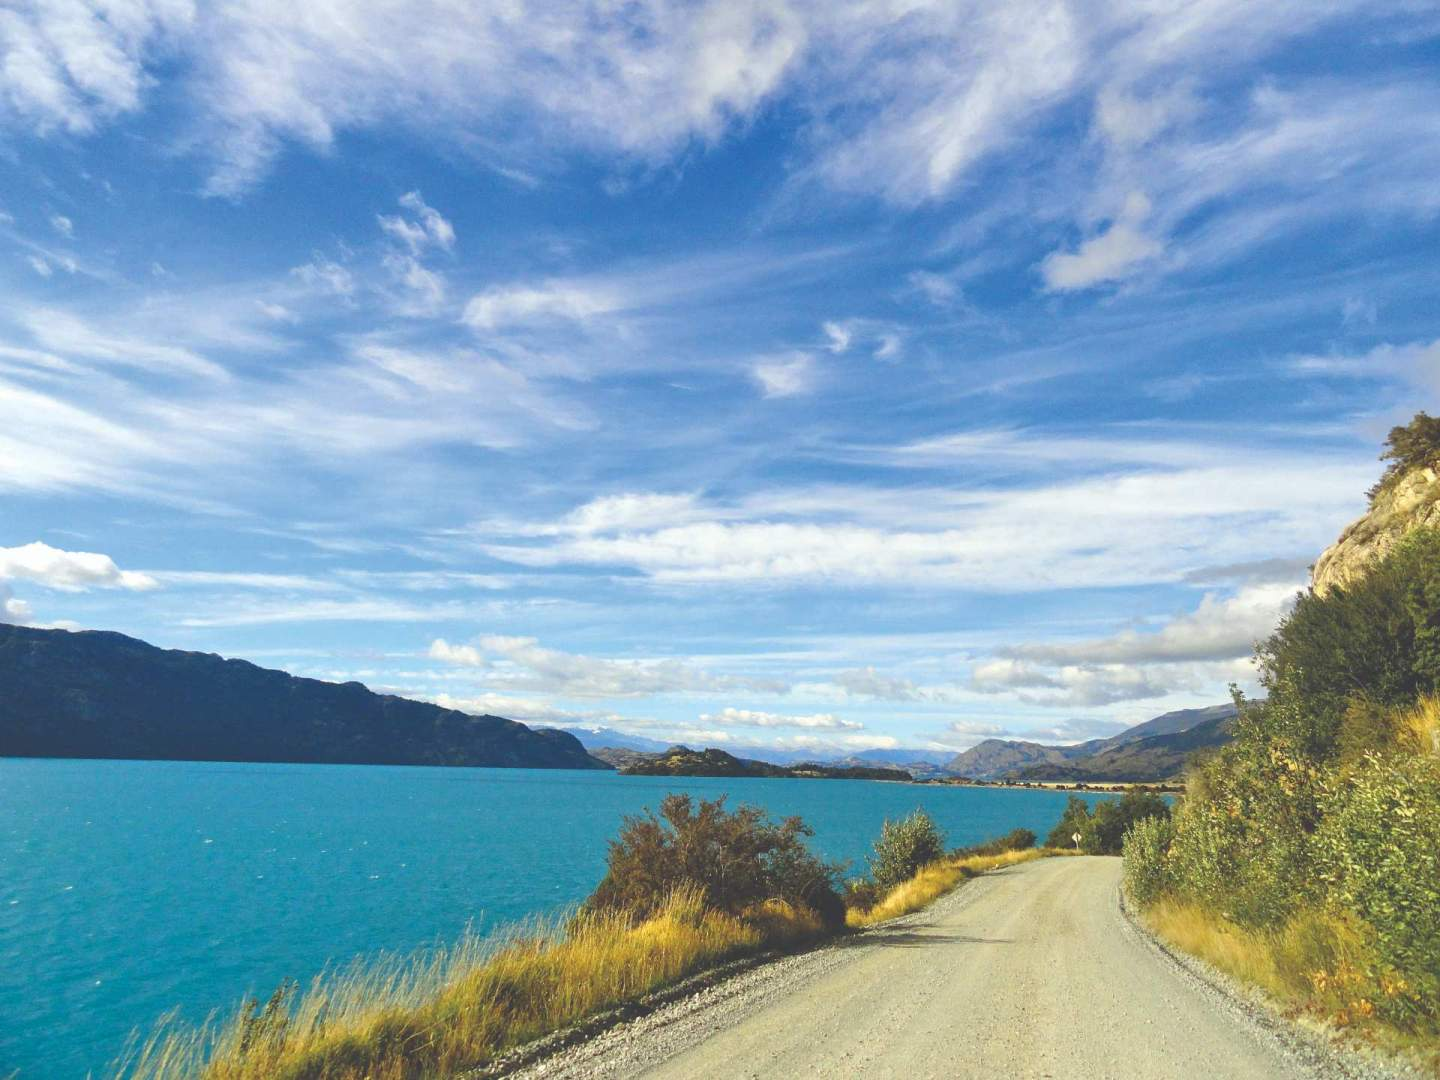 Patagonia, South America, cycling in the Andes